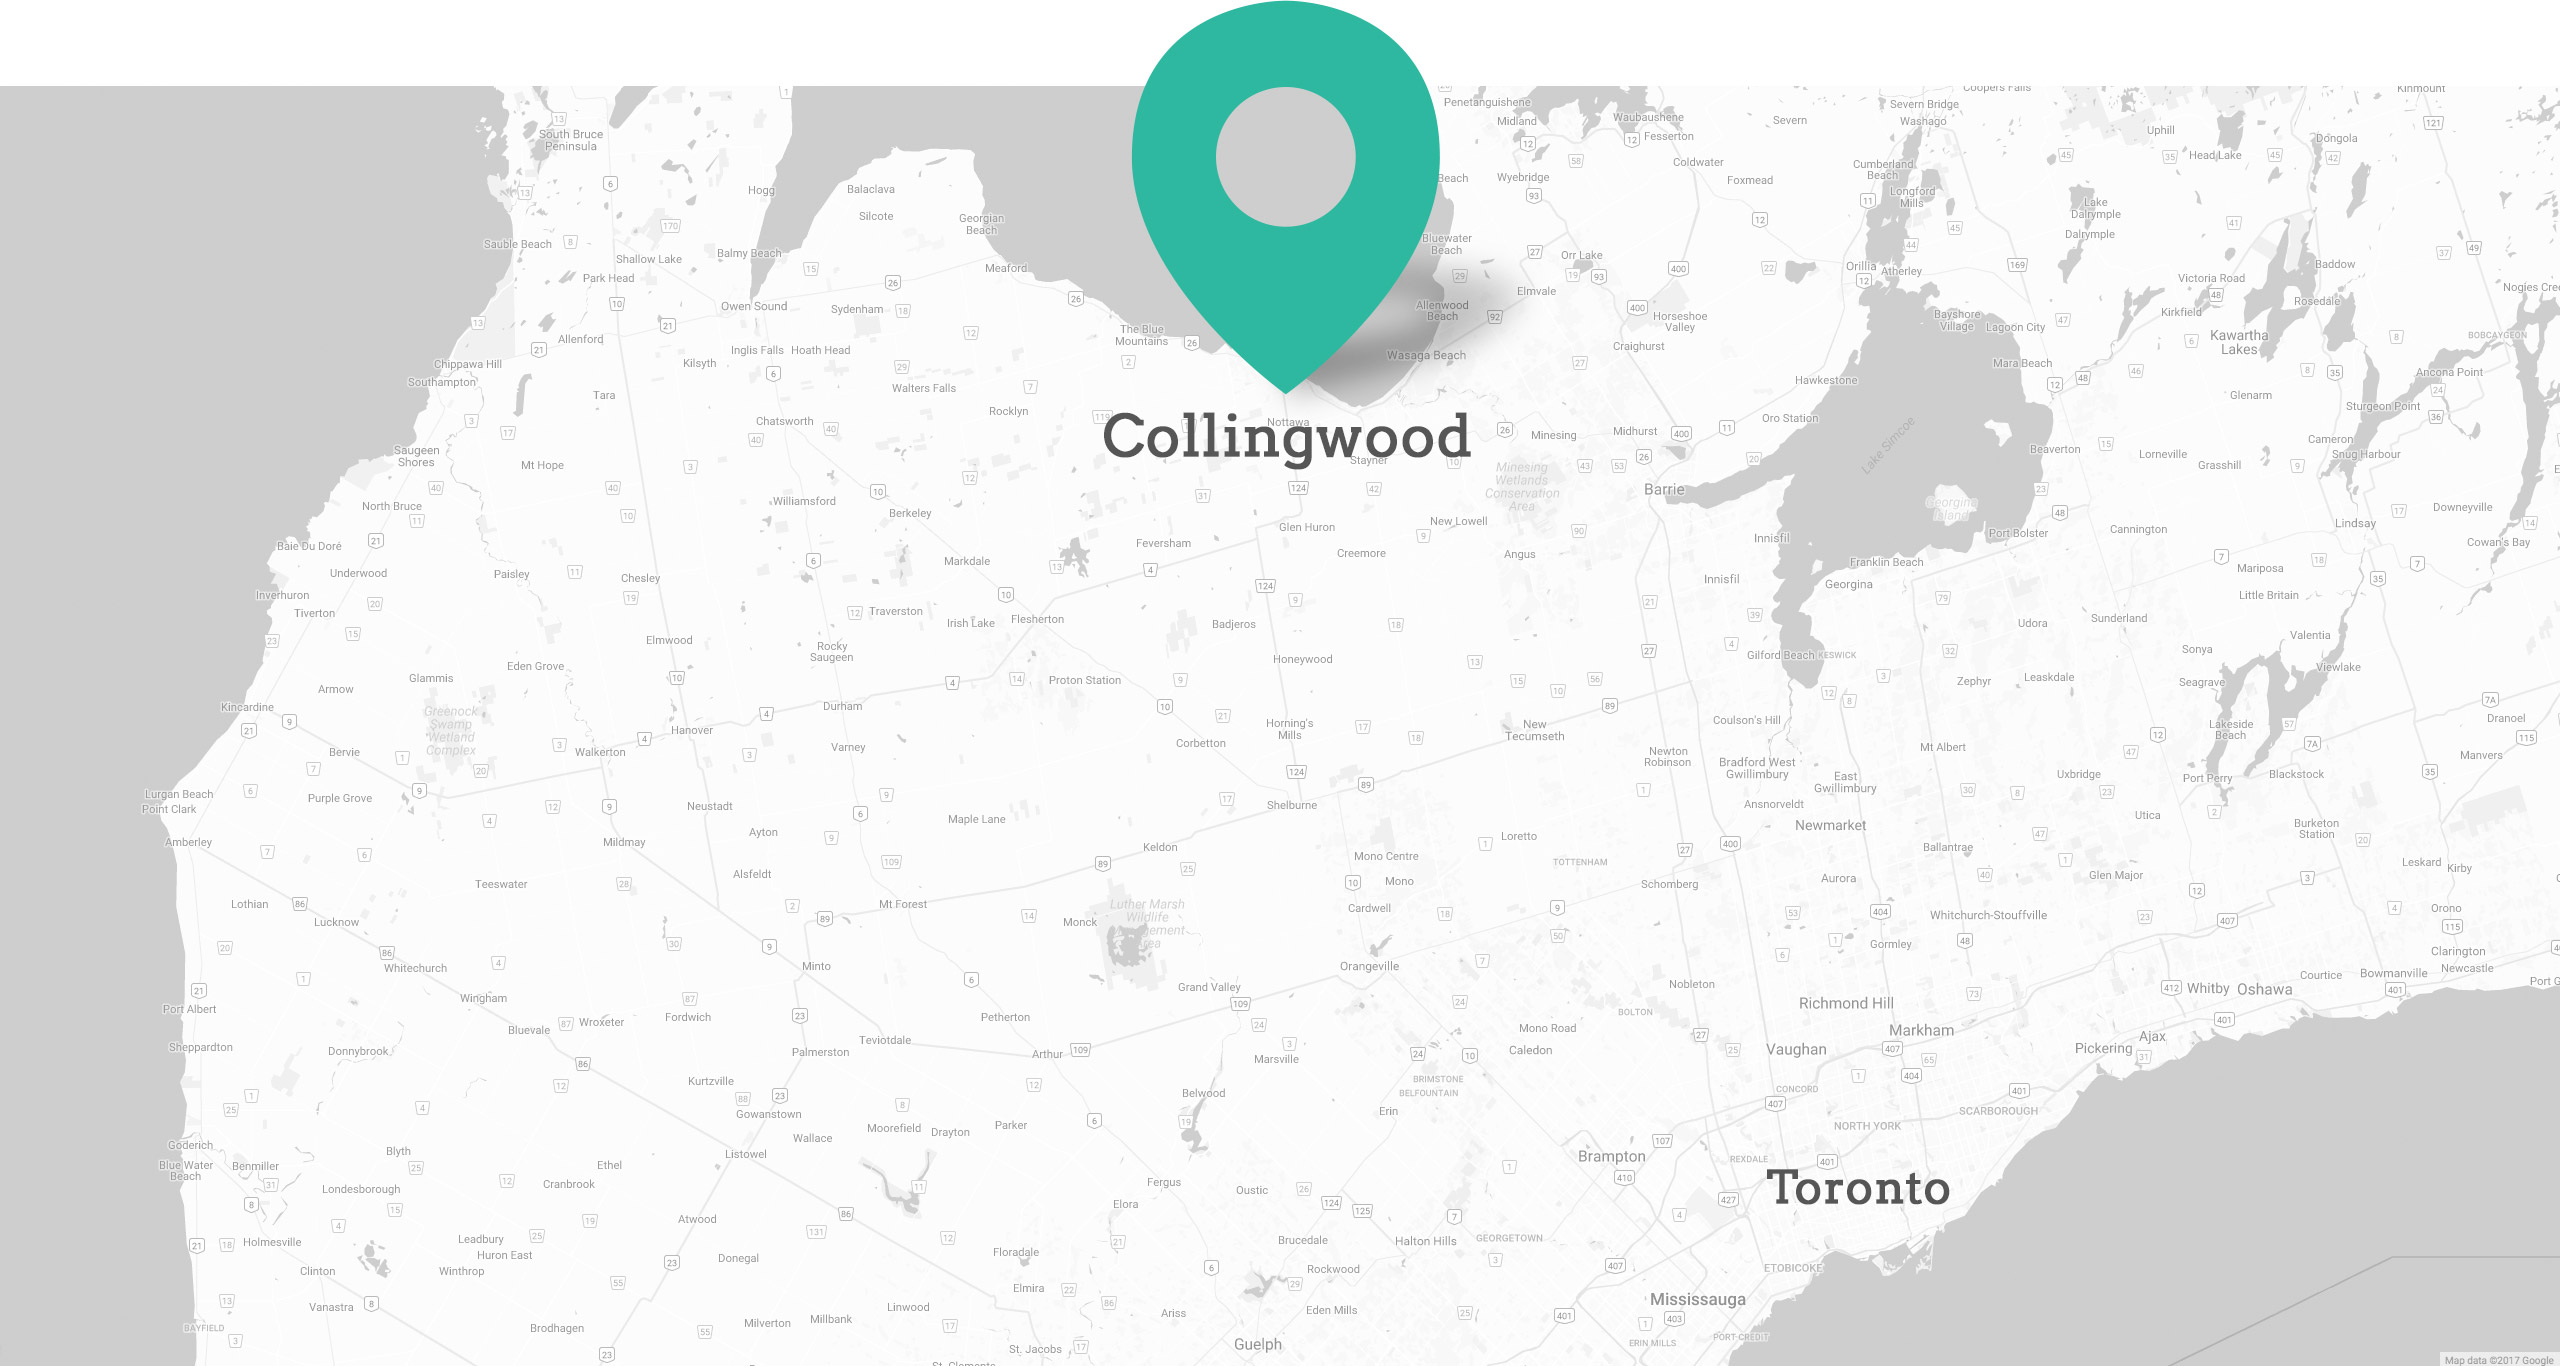 Collingwood location map